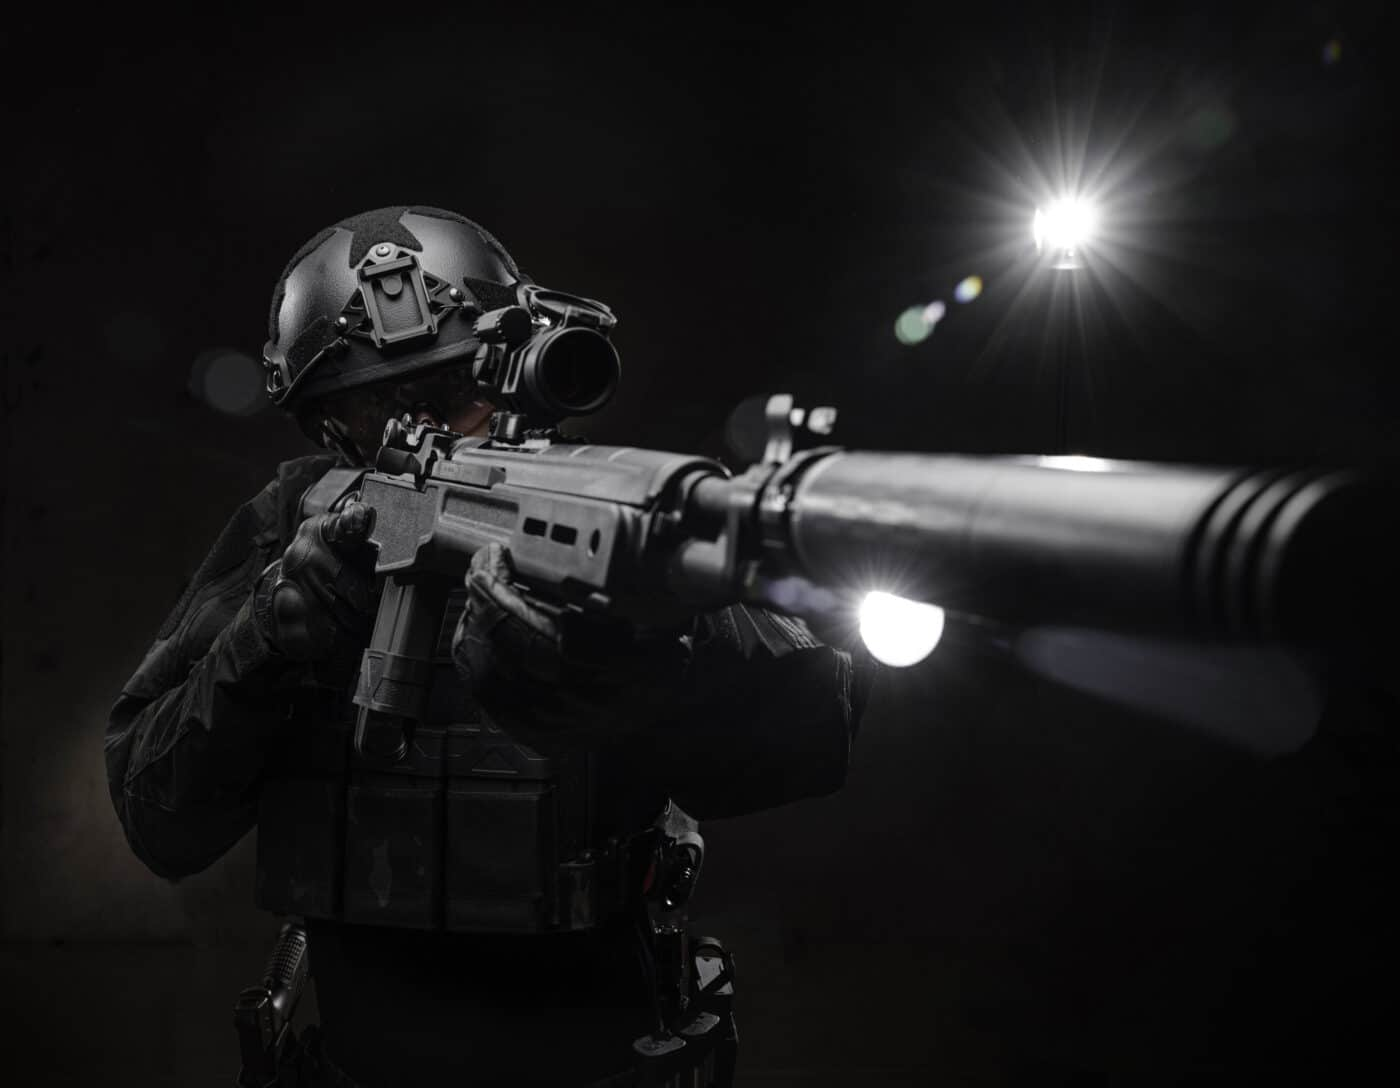 Springfield Armory Tactical M1A SOCOM 16 CQB being held by man in armor